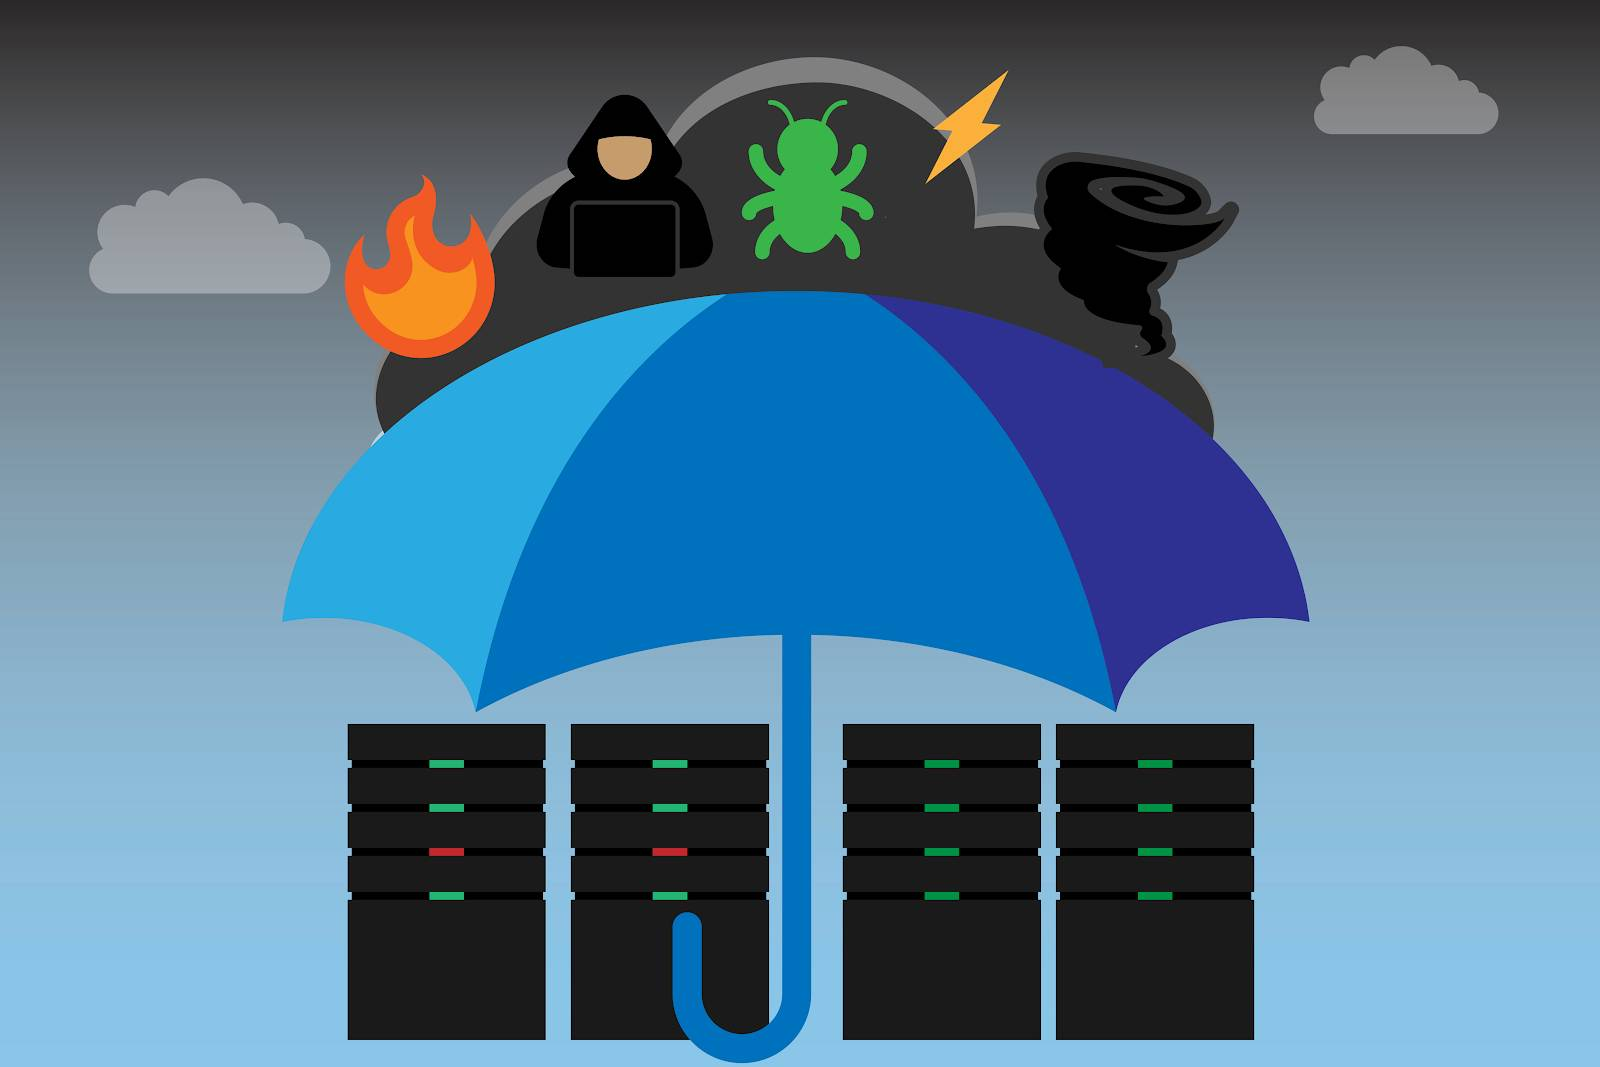 Image of a group of servers, covered by an umbrella, with icons representing fire, a hacktivist, a bug indicating malware, lightning, and a tornado in the sky.